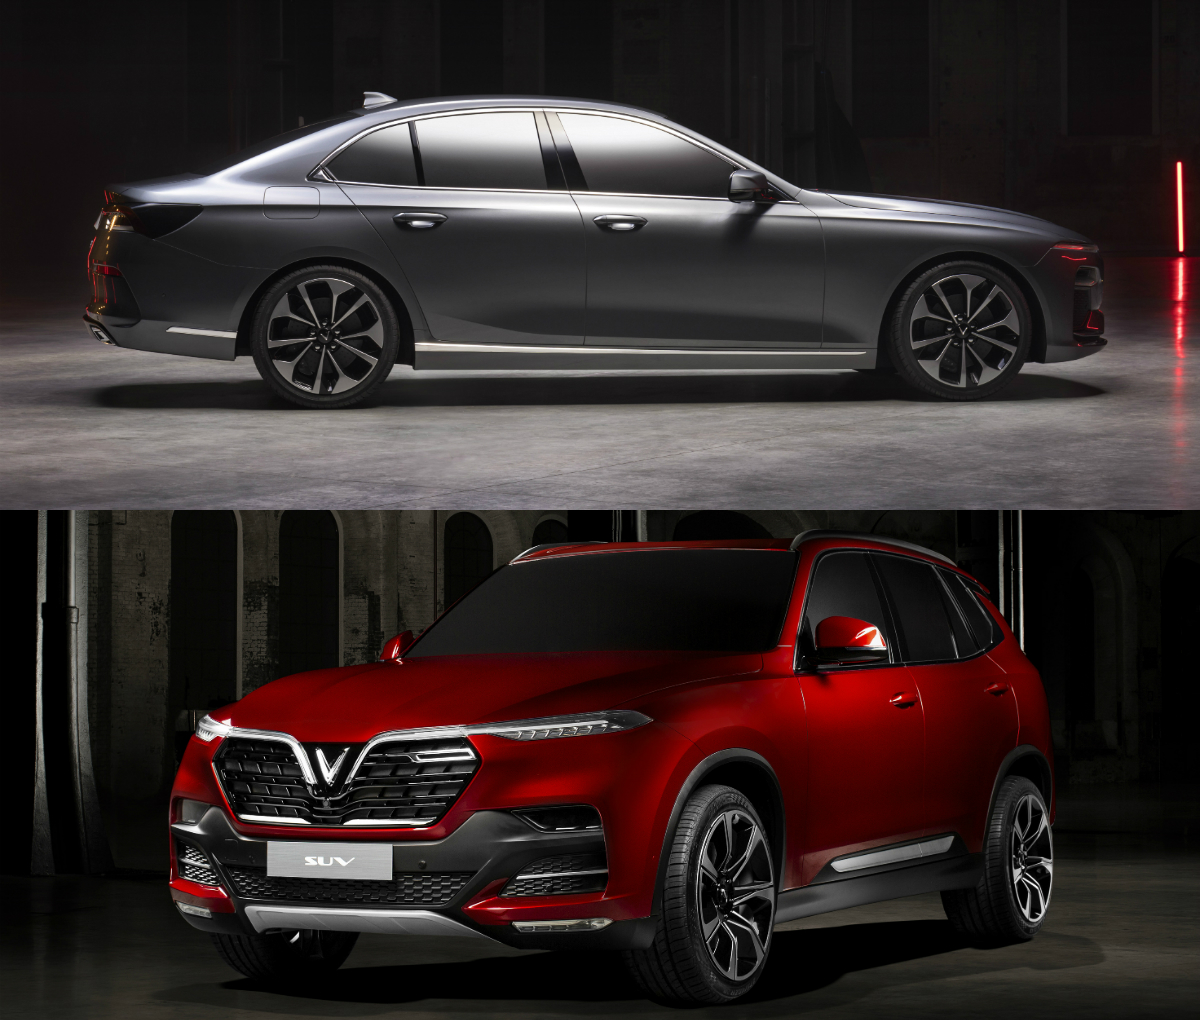 Vietnamese Car Company VinFast Reveals First Two Models